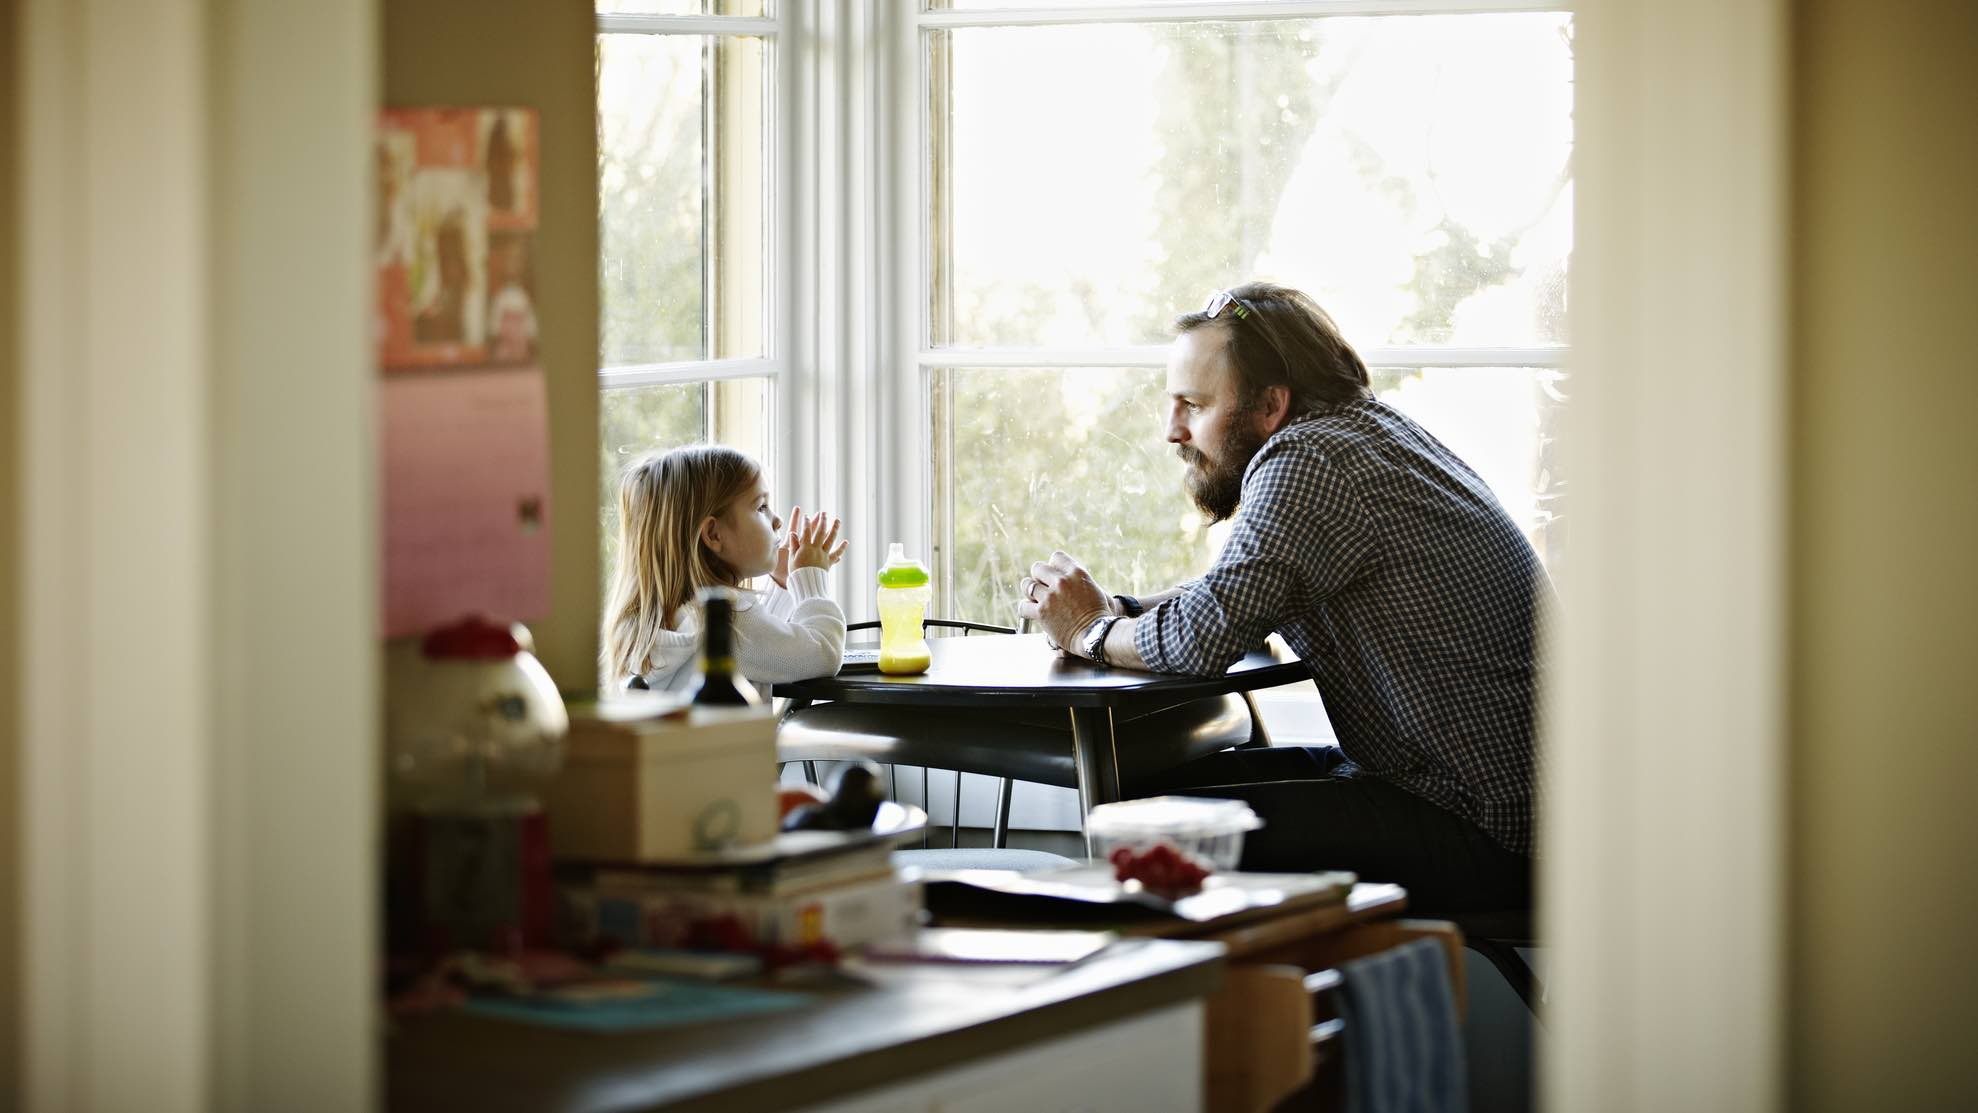 Father and child sitting at table, thinking about life insurance.